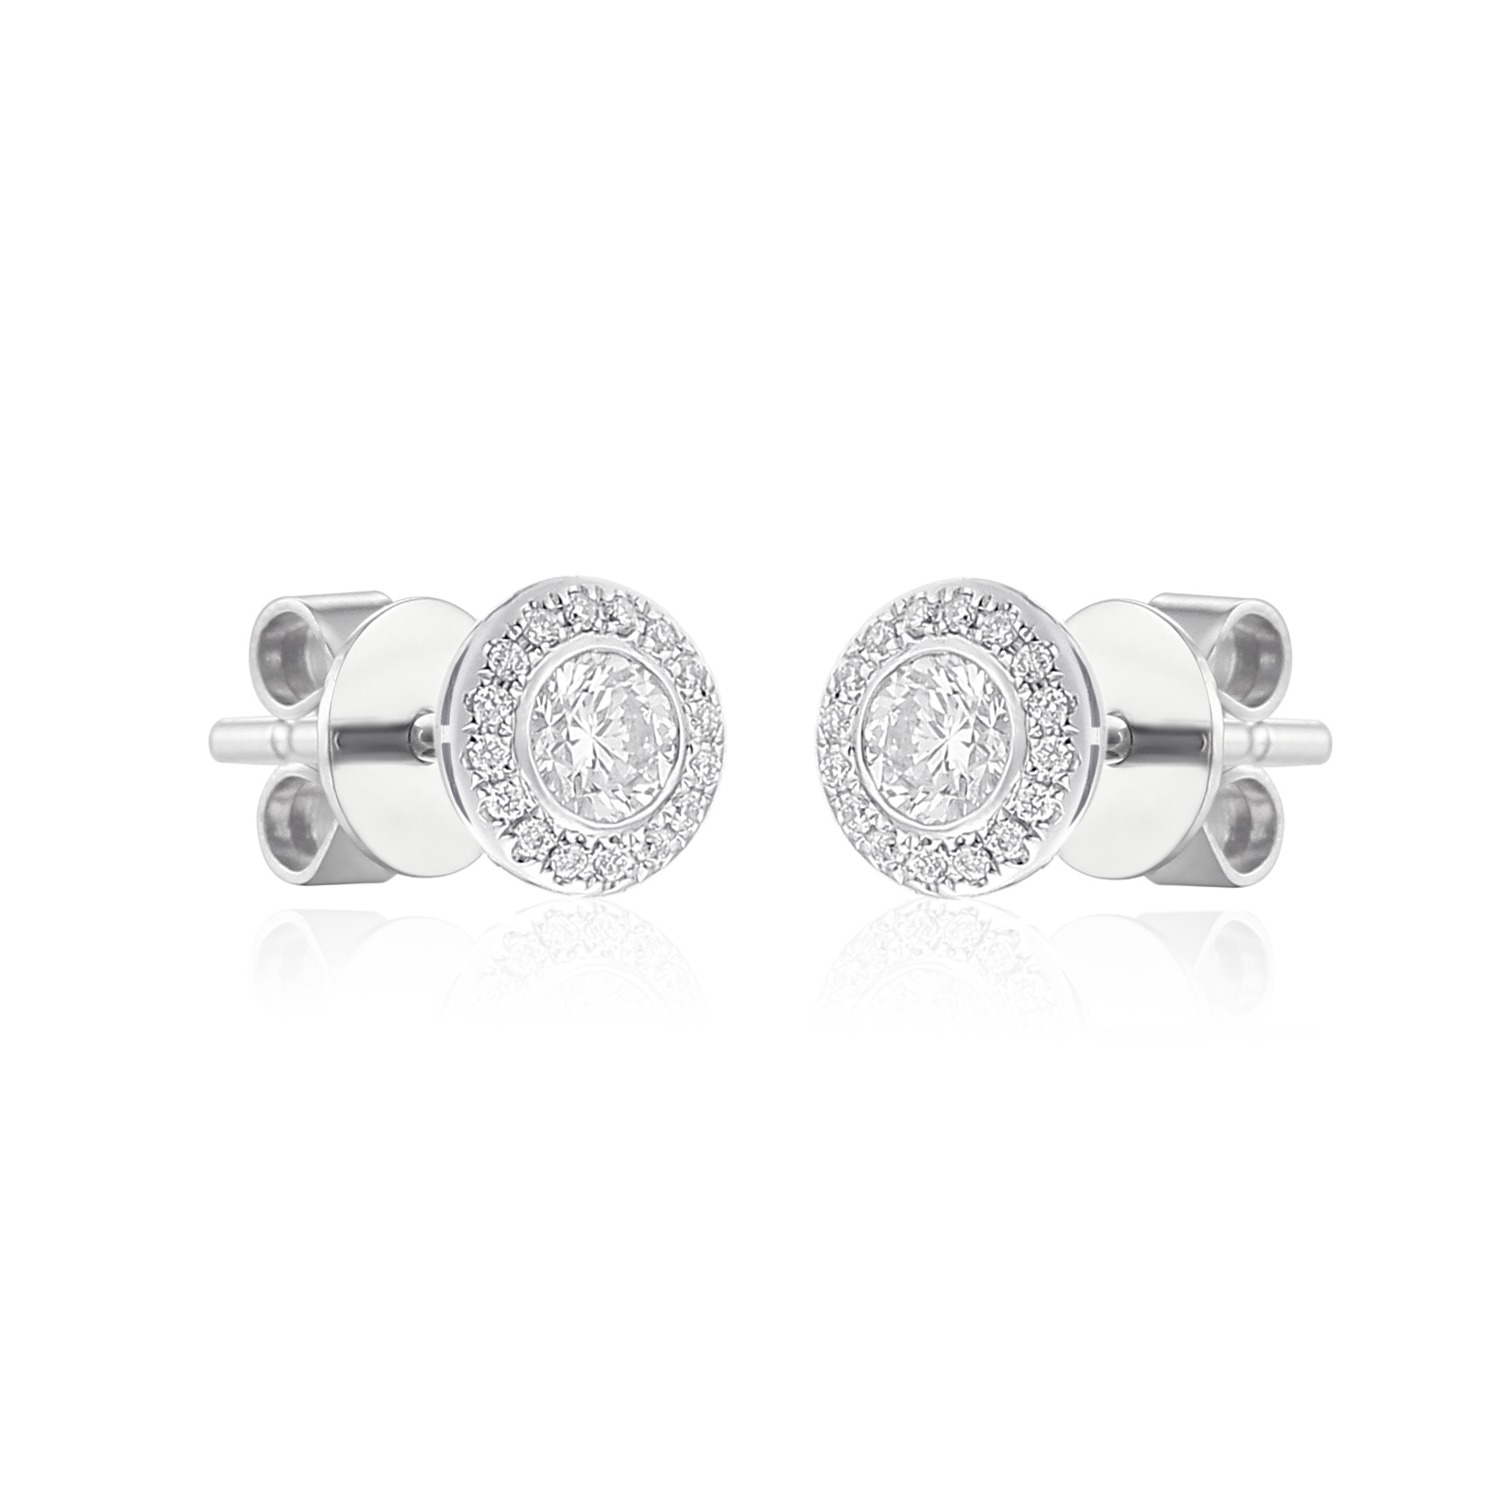 exquisite 18ct white gold halo earrings